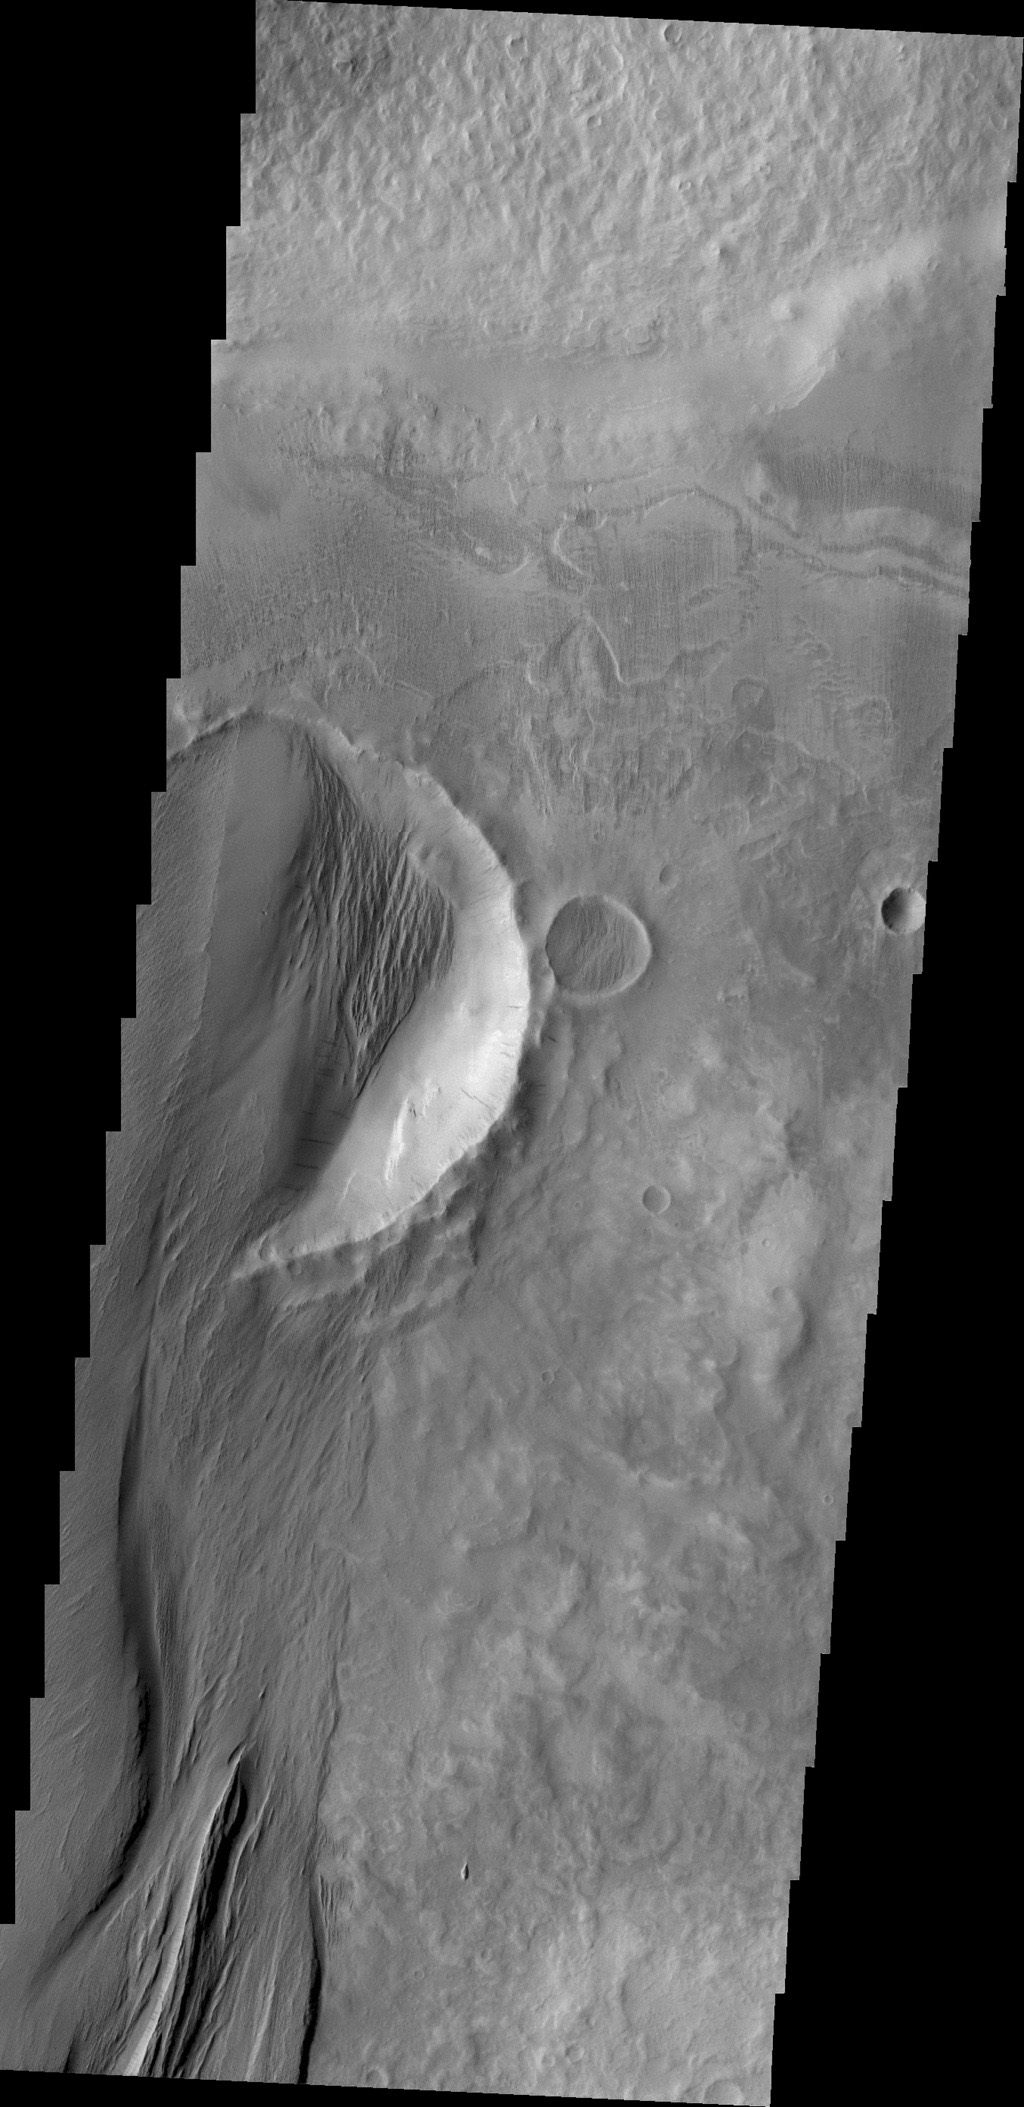 The power of the wind is undeniable in this image of the surface of Mars as seen by NASA's 2001 Mars Odyssey spacecraft.